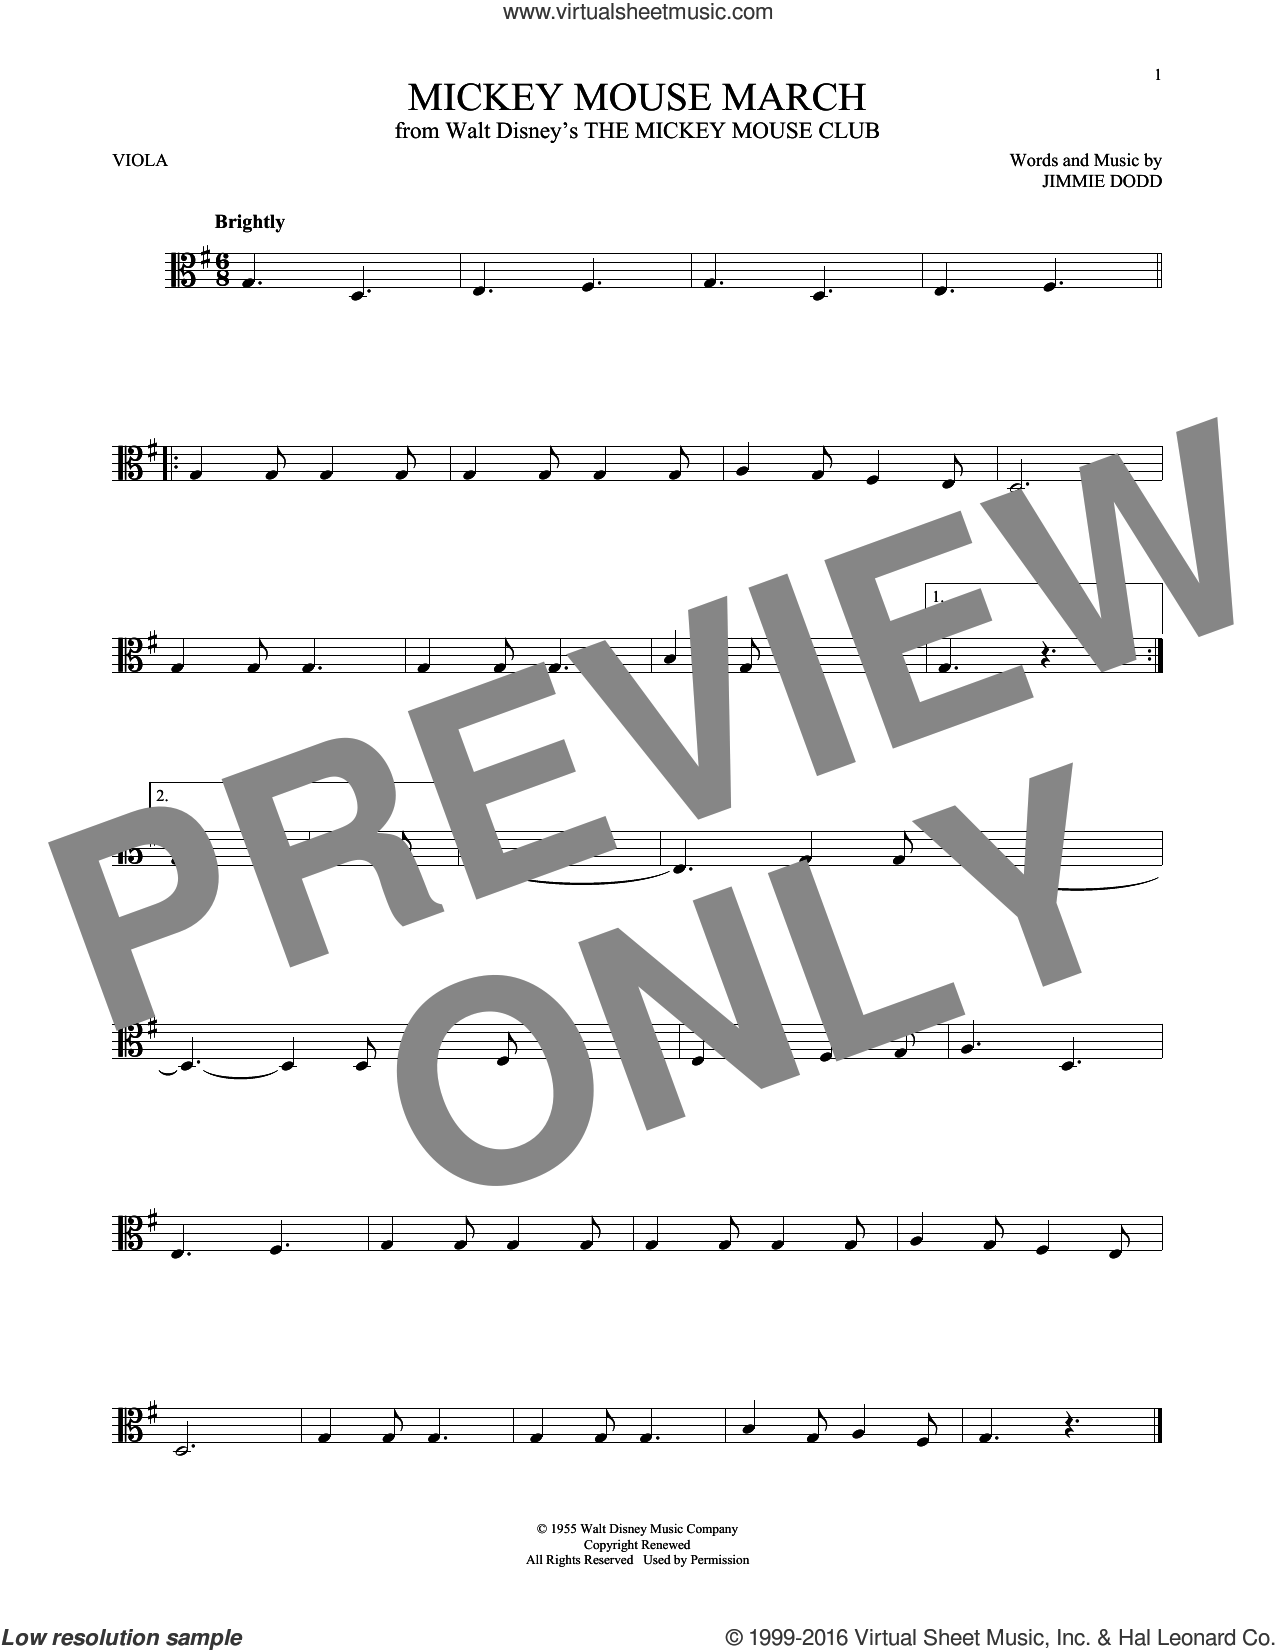 Mickey Mouse March sheet music for viola solo by Jimmie Dodd, intermediate skill level